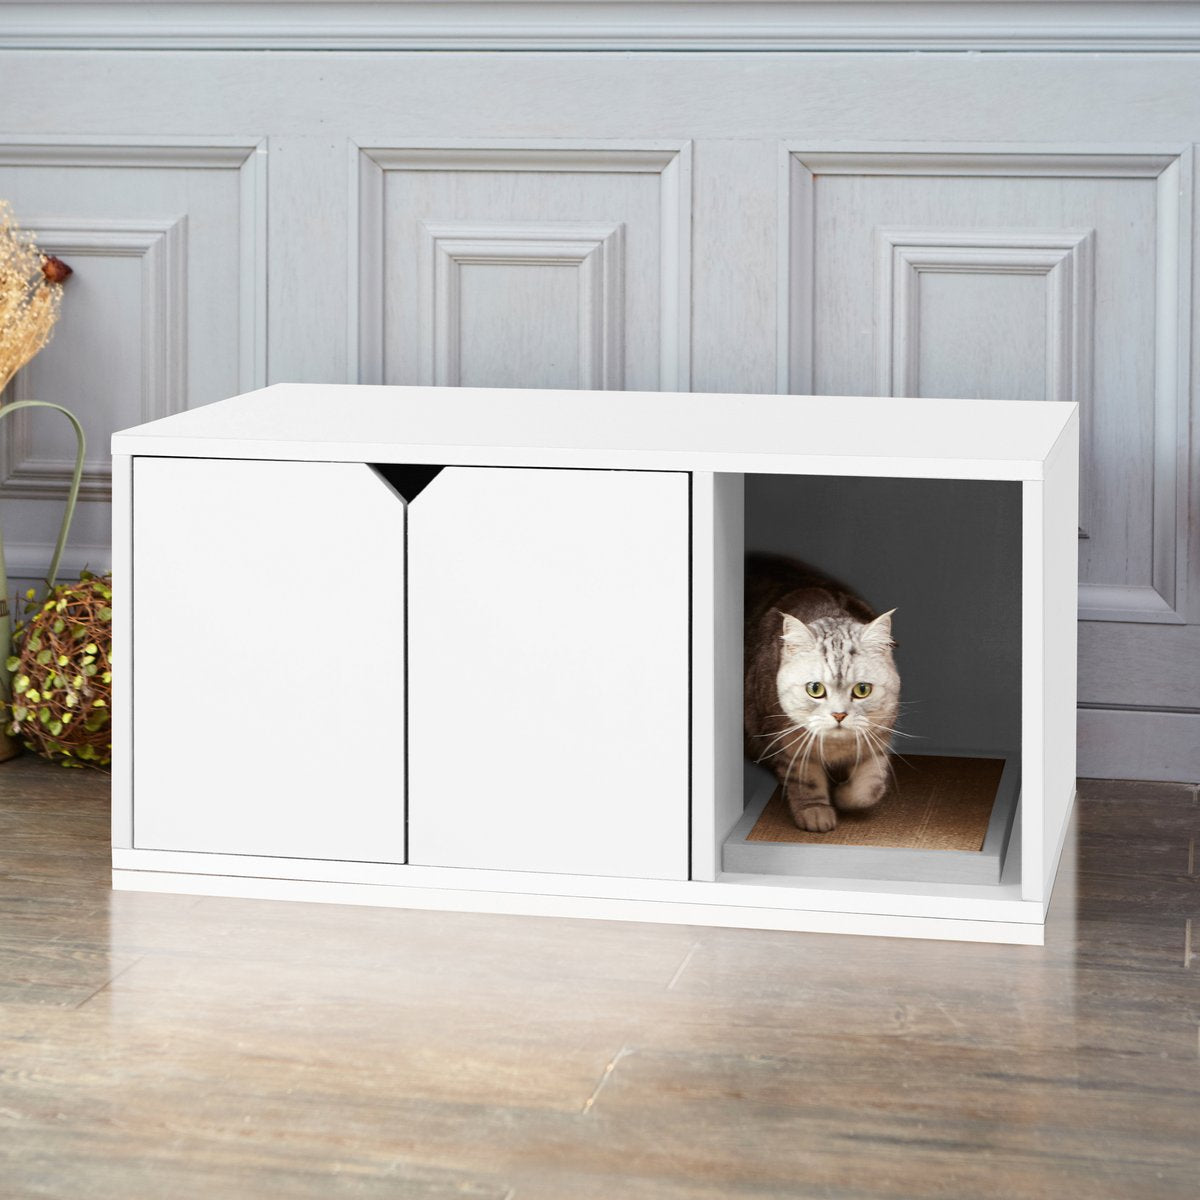 Eco Friendly Non Toxic Cat Litter Box Hider From Way Basics Hauspanther